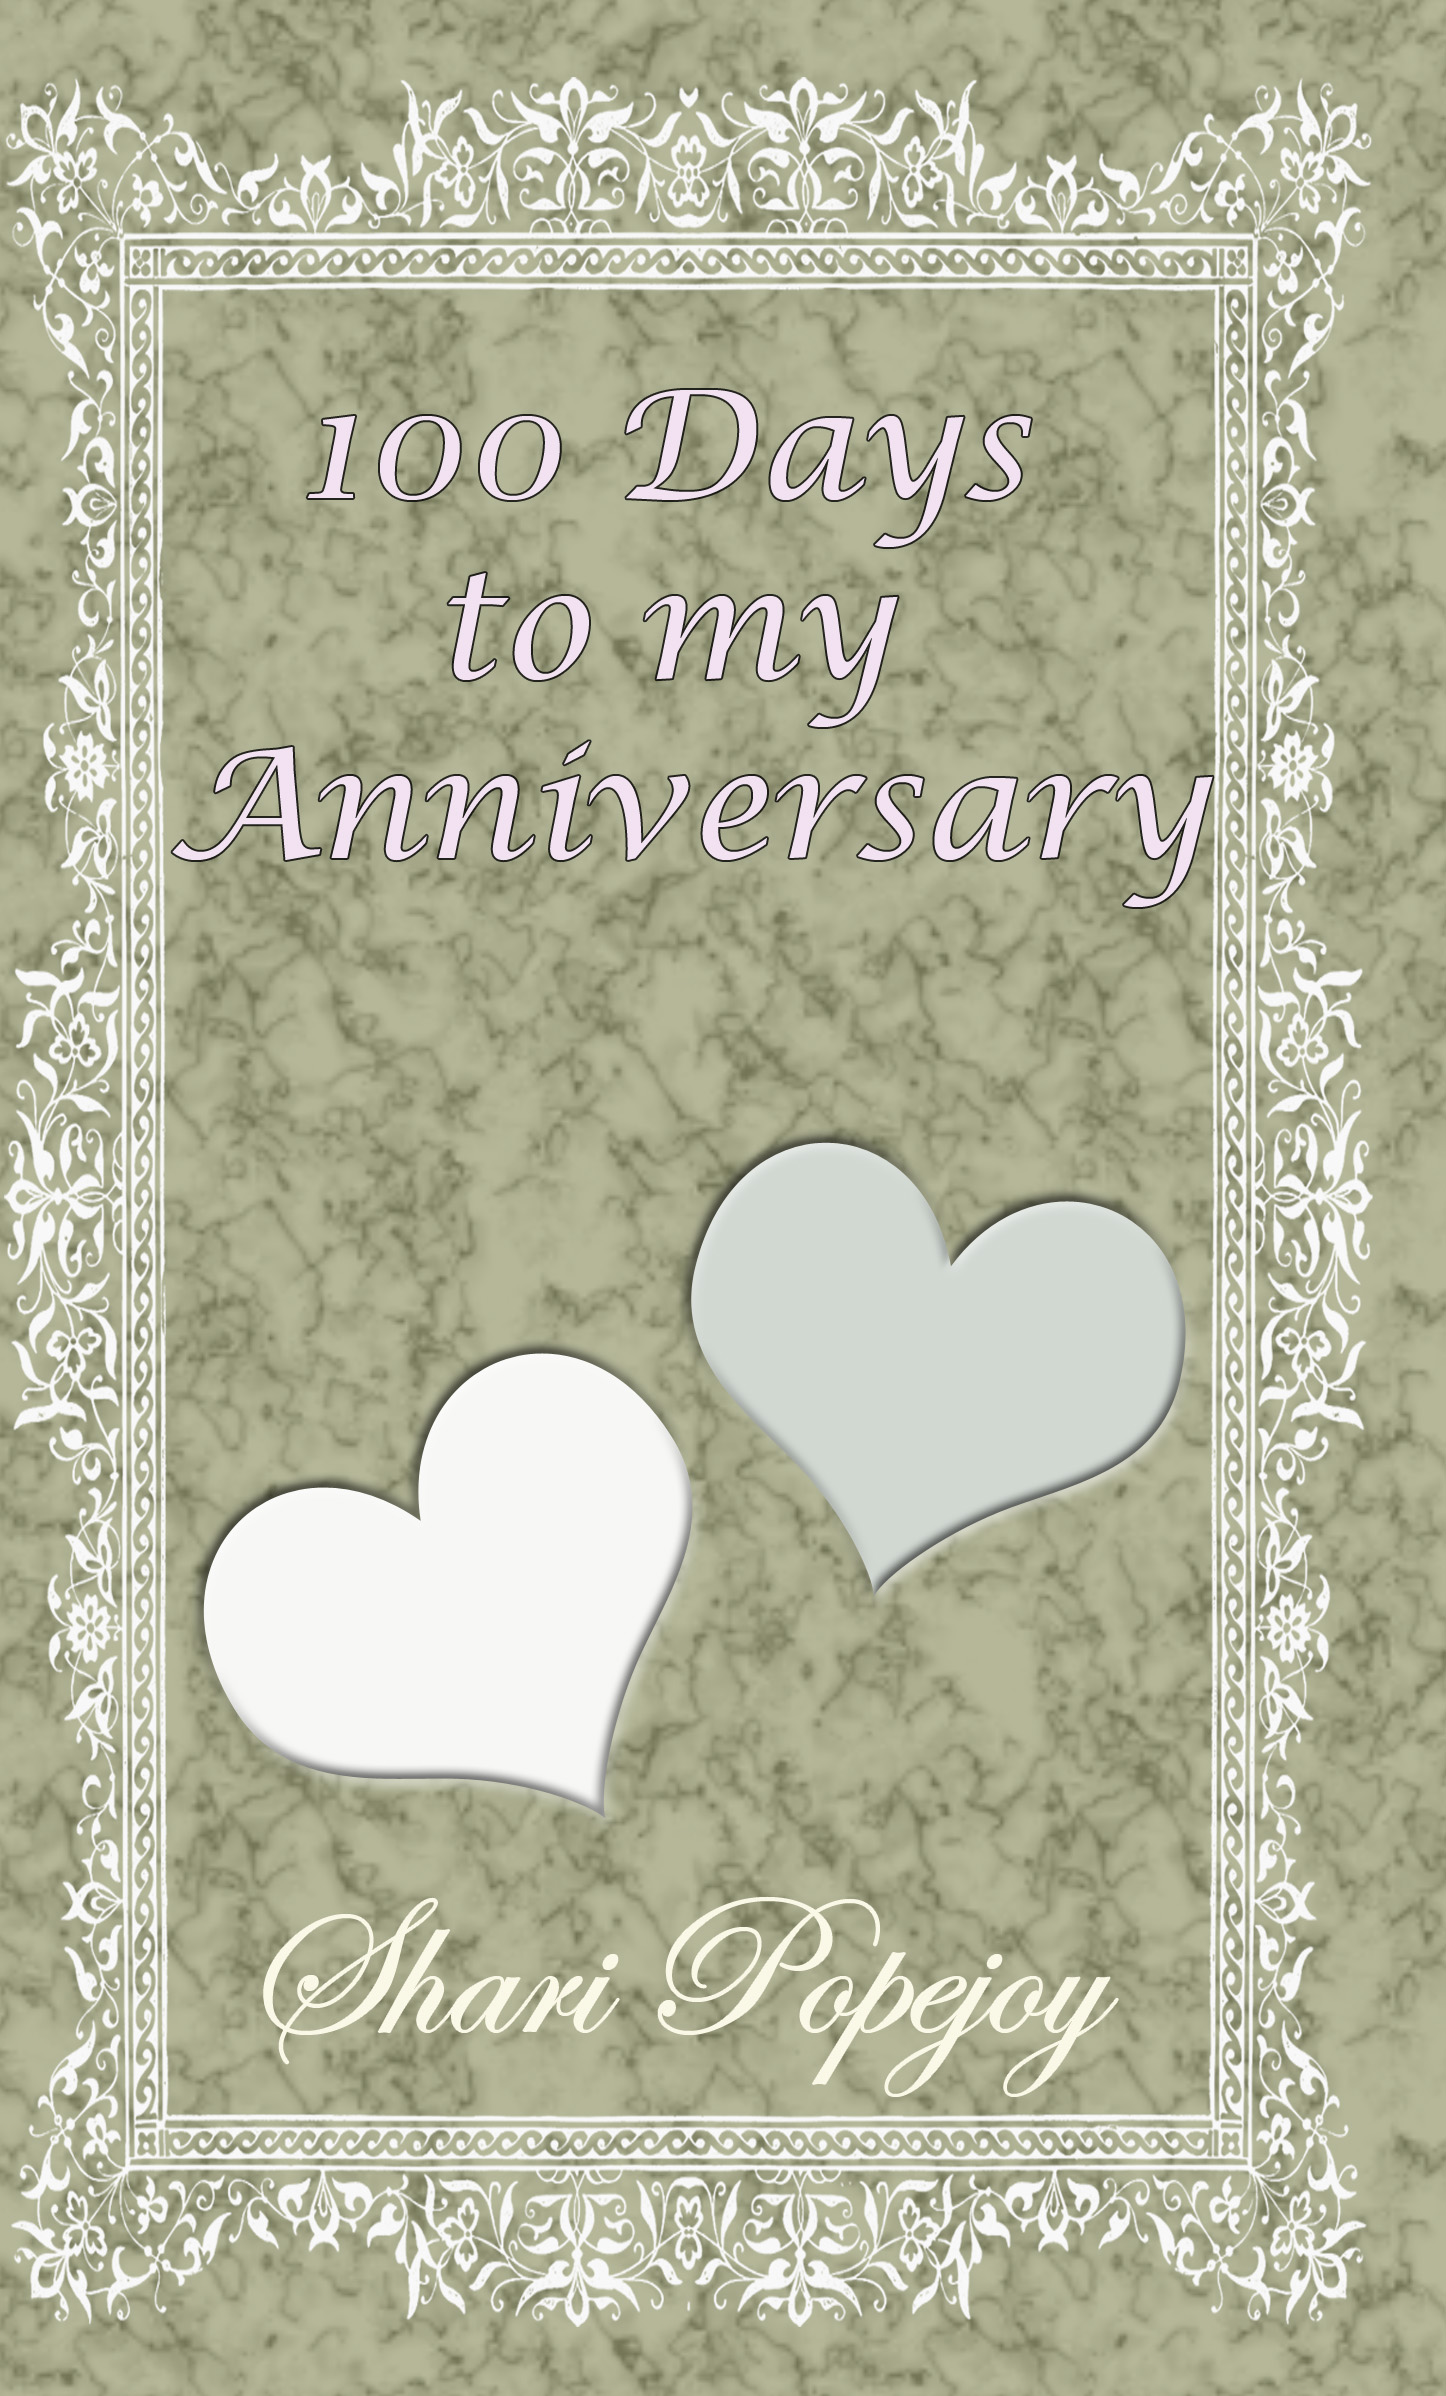 100 Days To My Anniversary Now Available As An Ebook